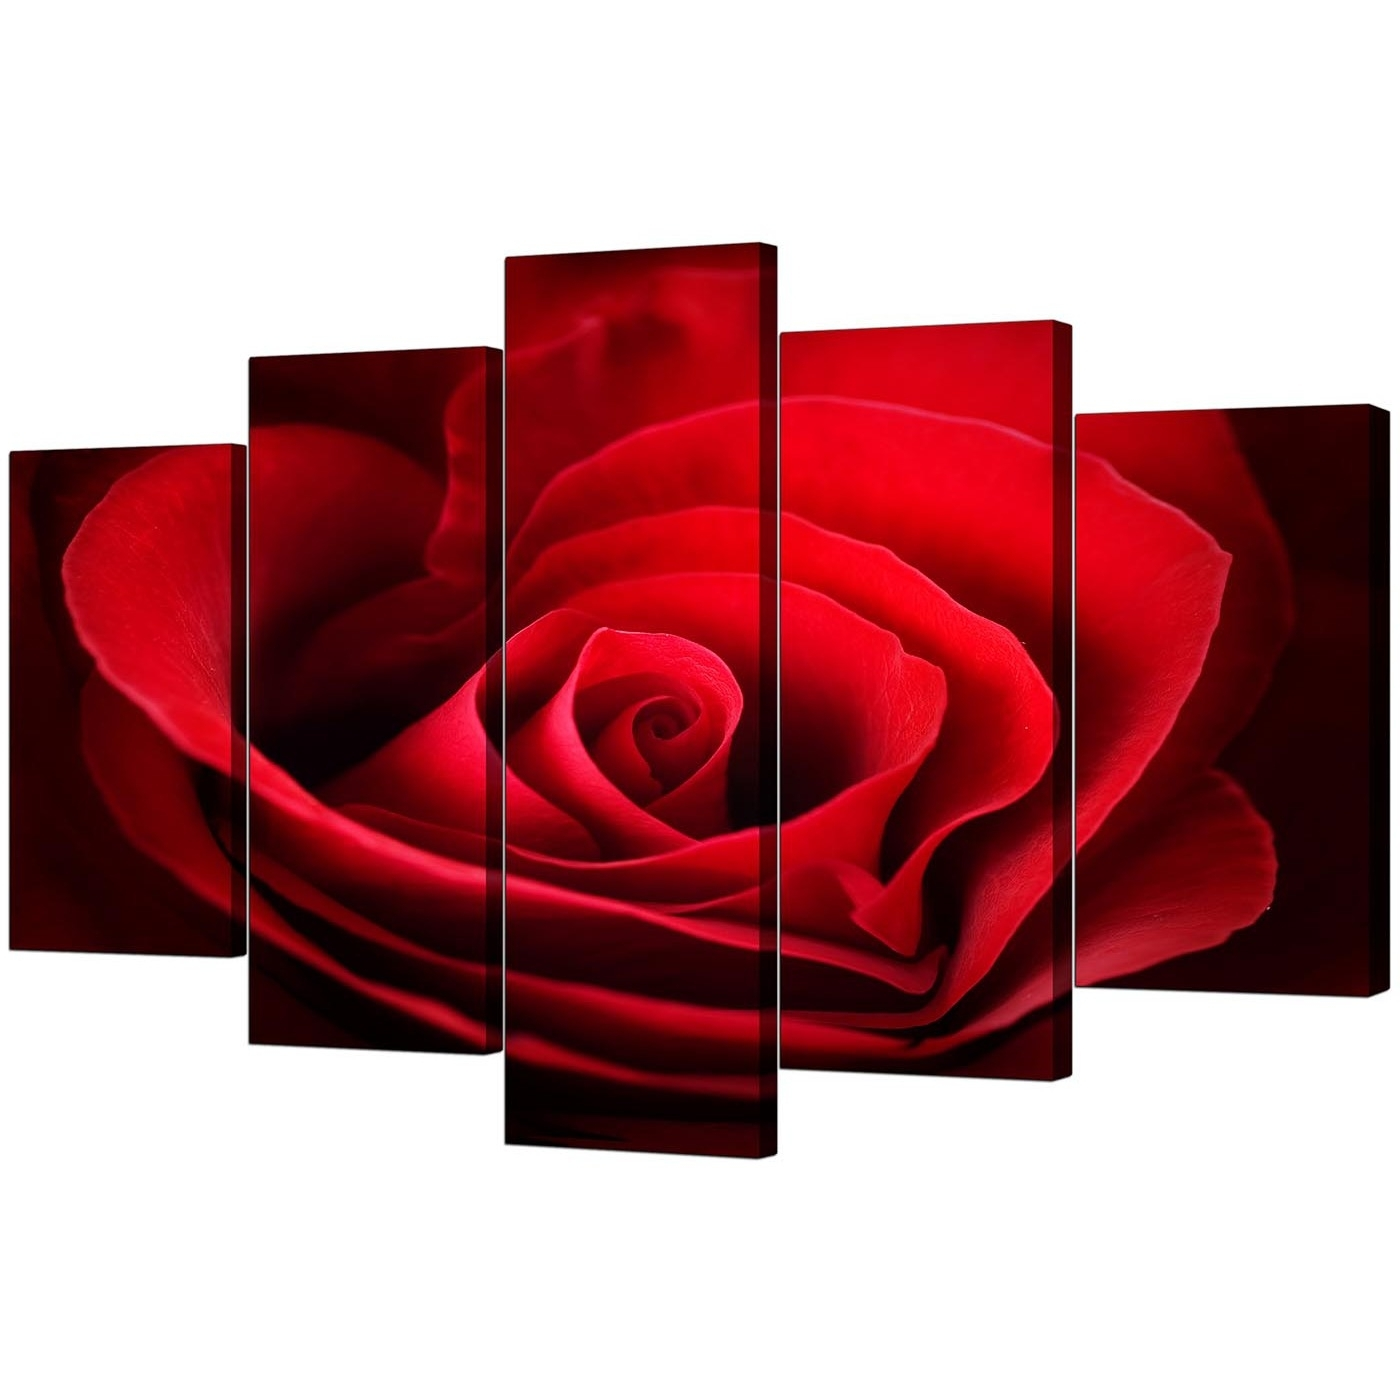 Red Rose Wall Art Regarding Popular Extra Large Rose Canvas Wall Art 5 Panel In Red (Gallery 1 of 15)